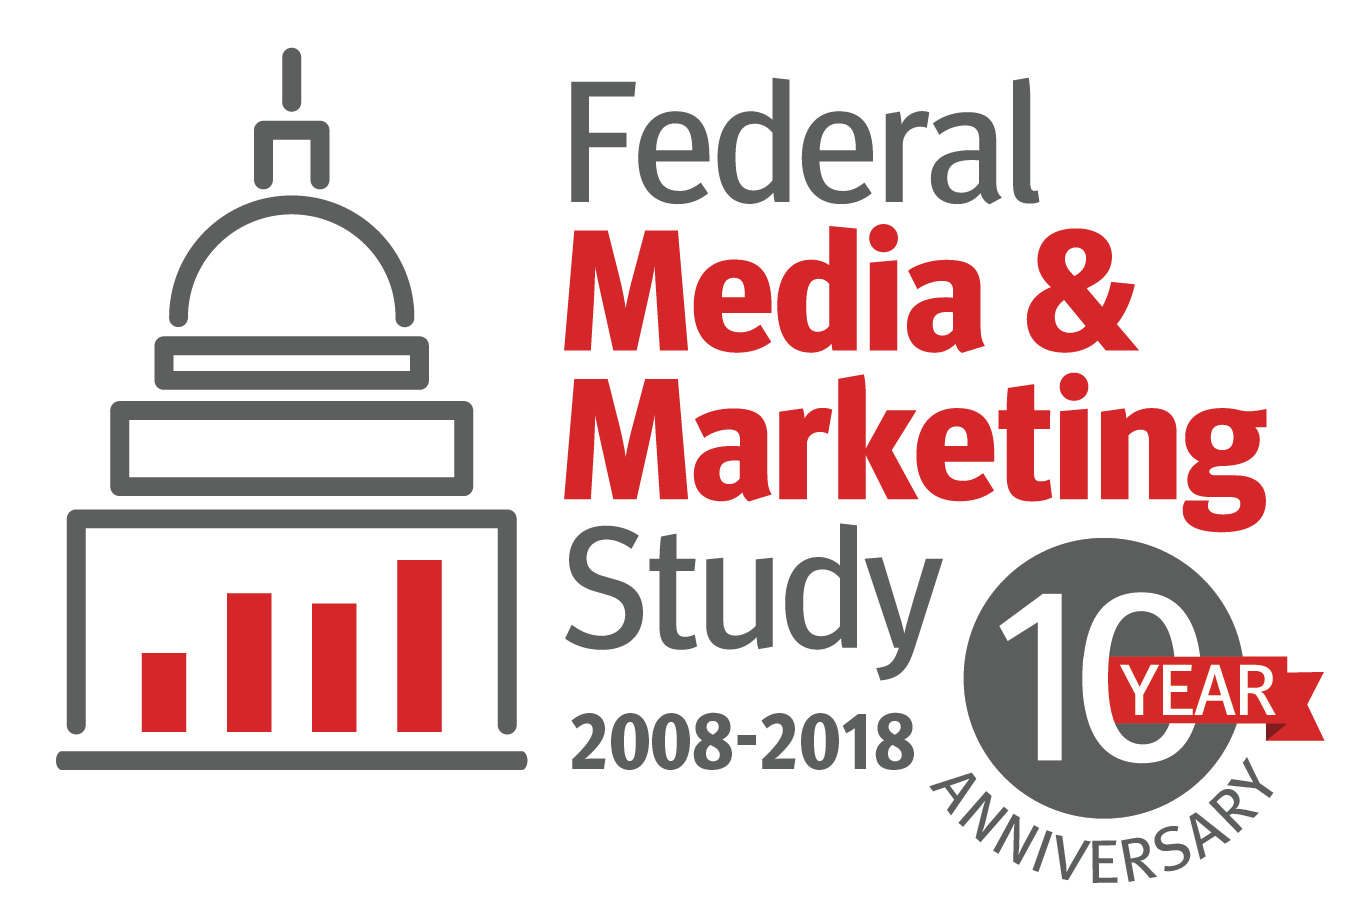 Federal Media and Marketing Study logo